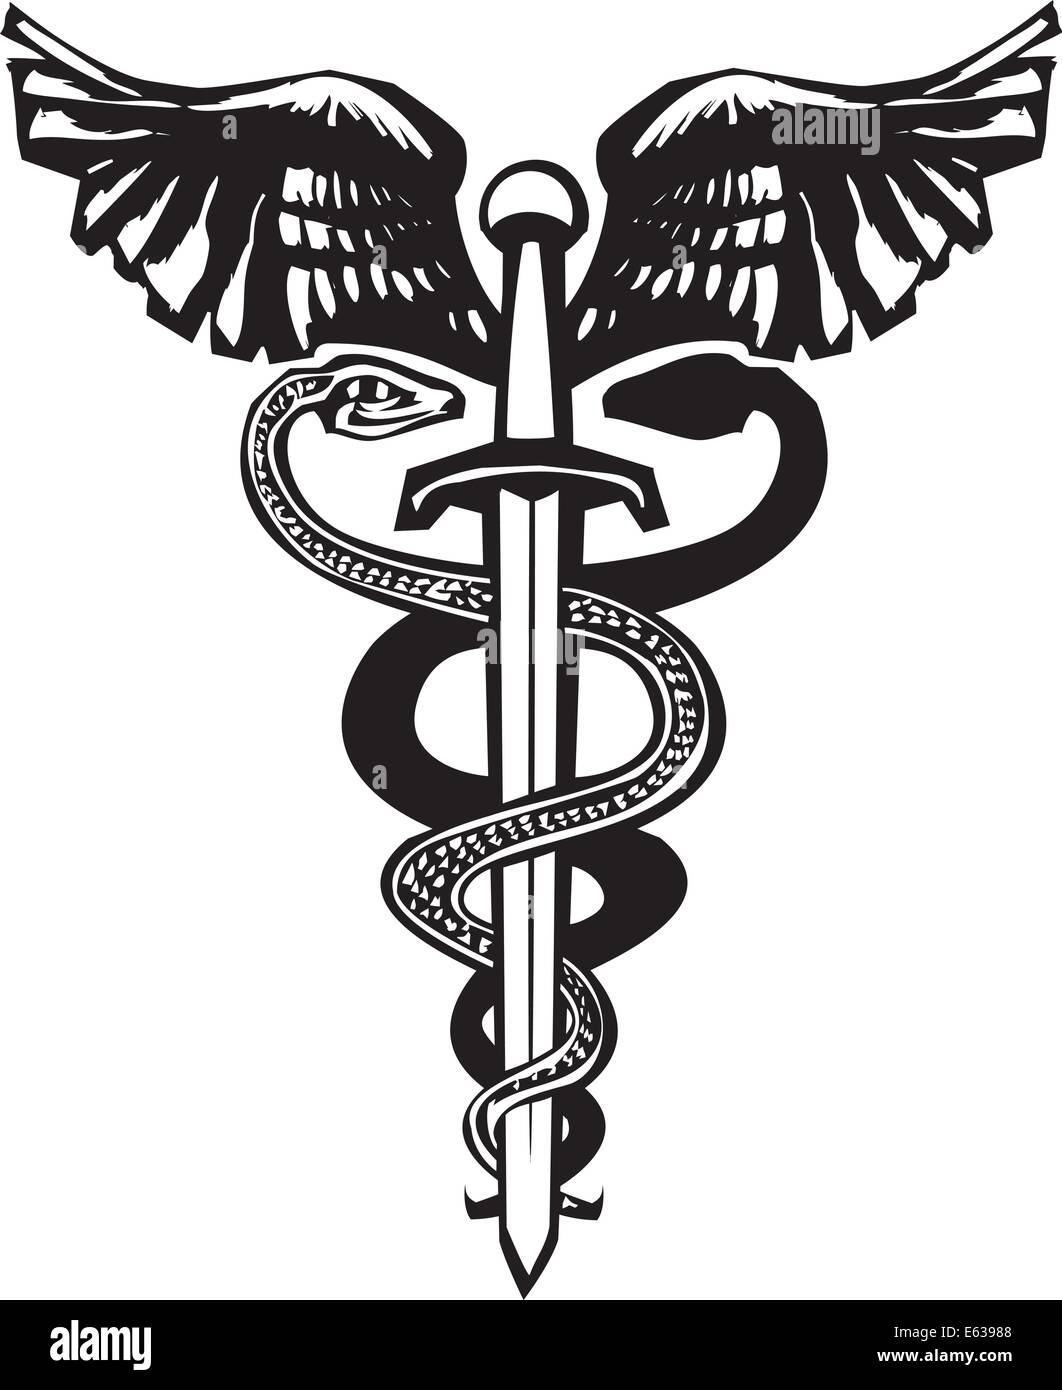 Woodcut variant image of the Caduceus with the snake entwined around a sword. - Stock Vector